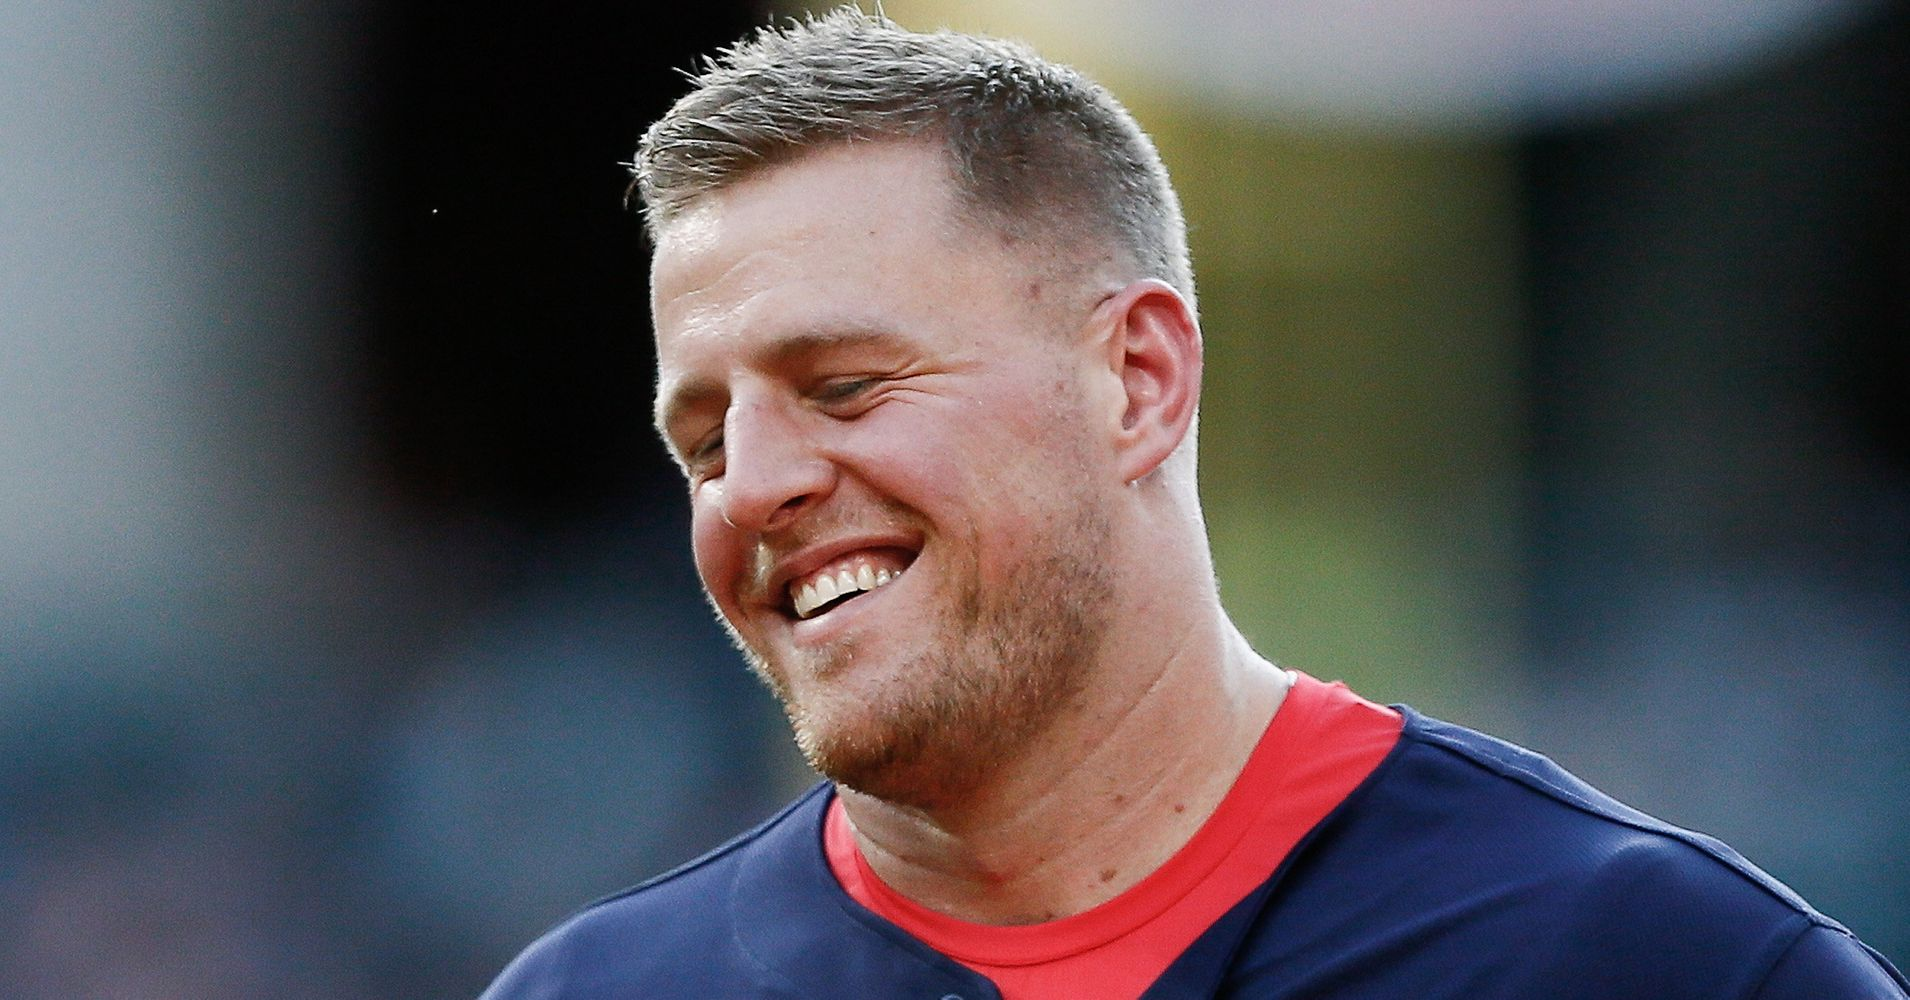 jj watt haircut texans teammates argue about existence of dinosaurs 1792 | 597cf4c31a00009bc1dc1204